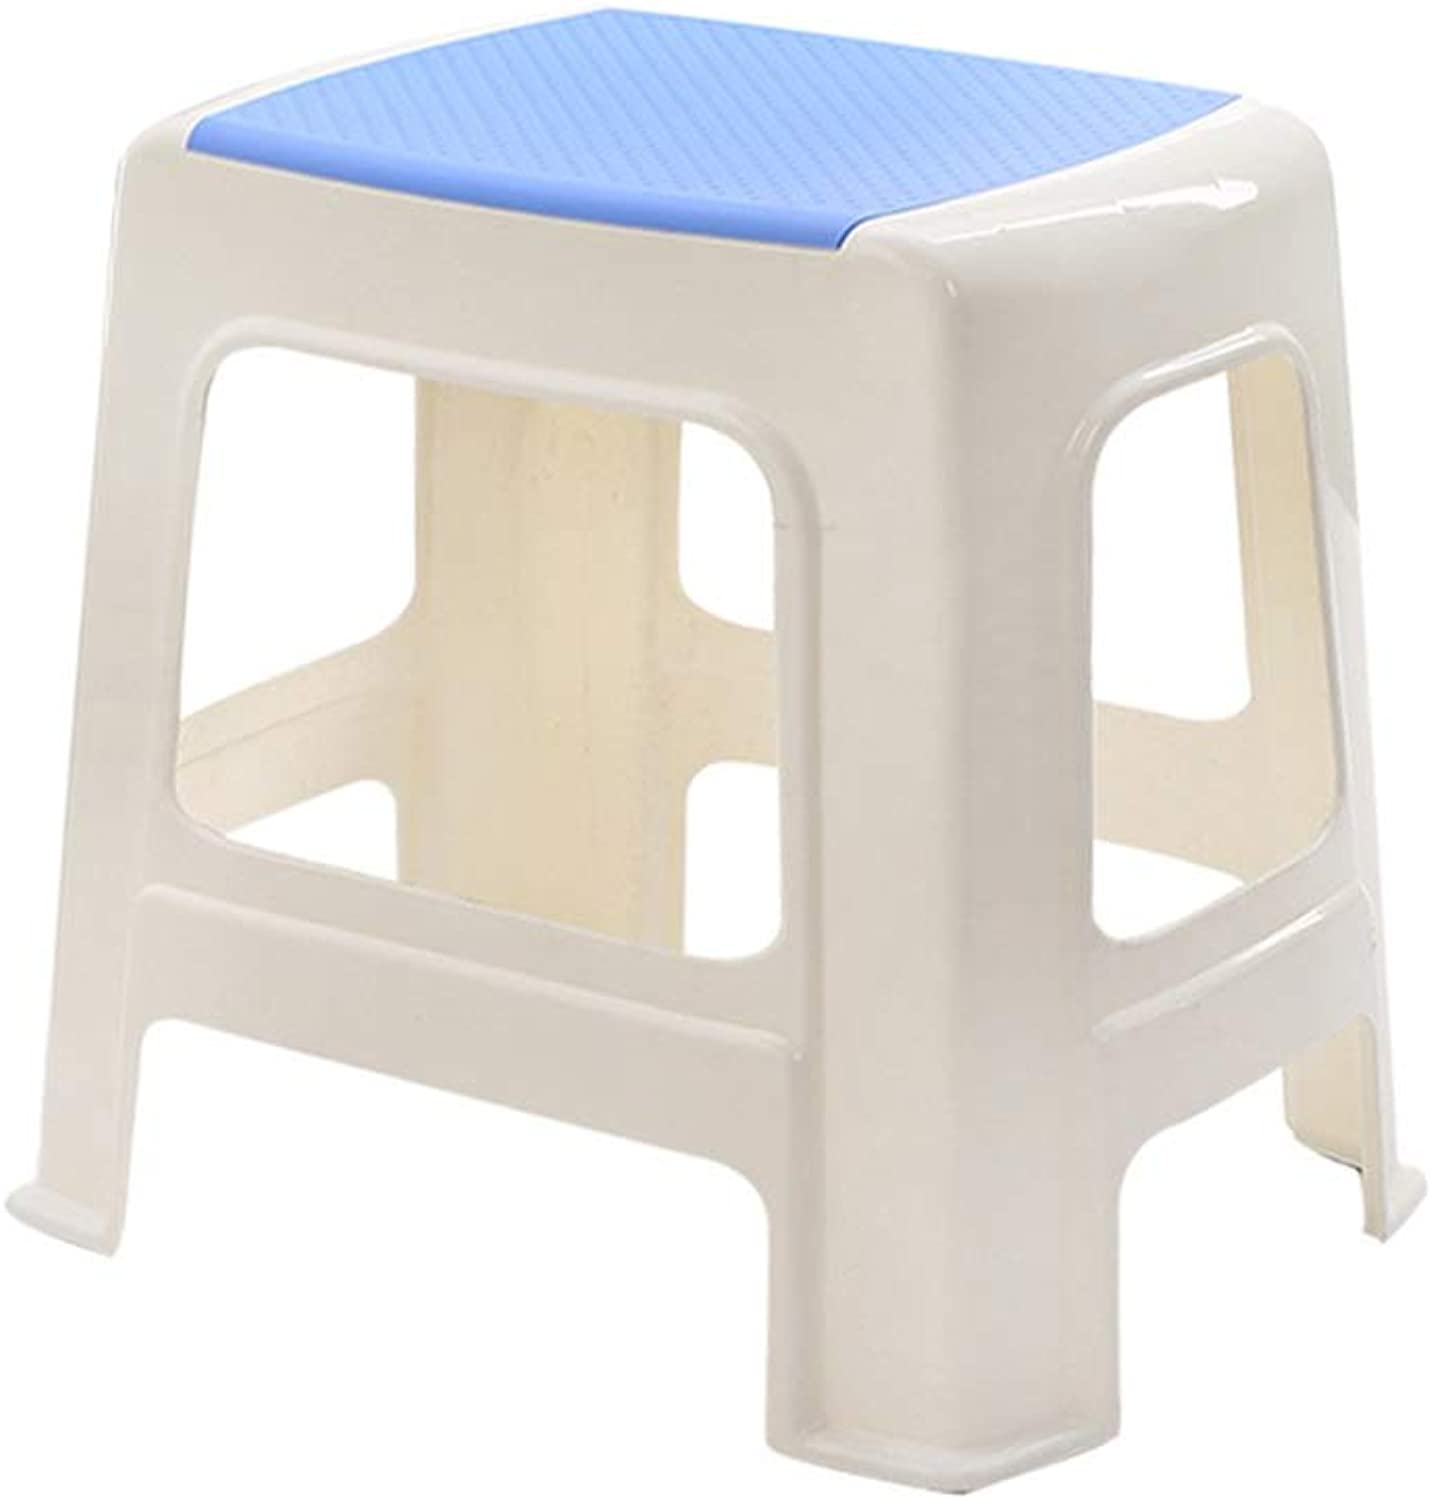 Stackable shoes Bench, Thicken Heightening Plastic Stacking Stool Kitchen Stool Table Stool Student Stool Rest Stool (color   C)